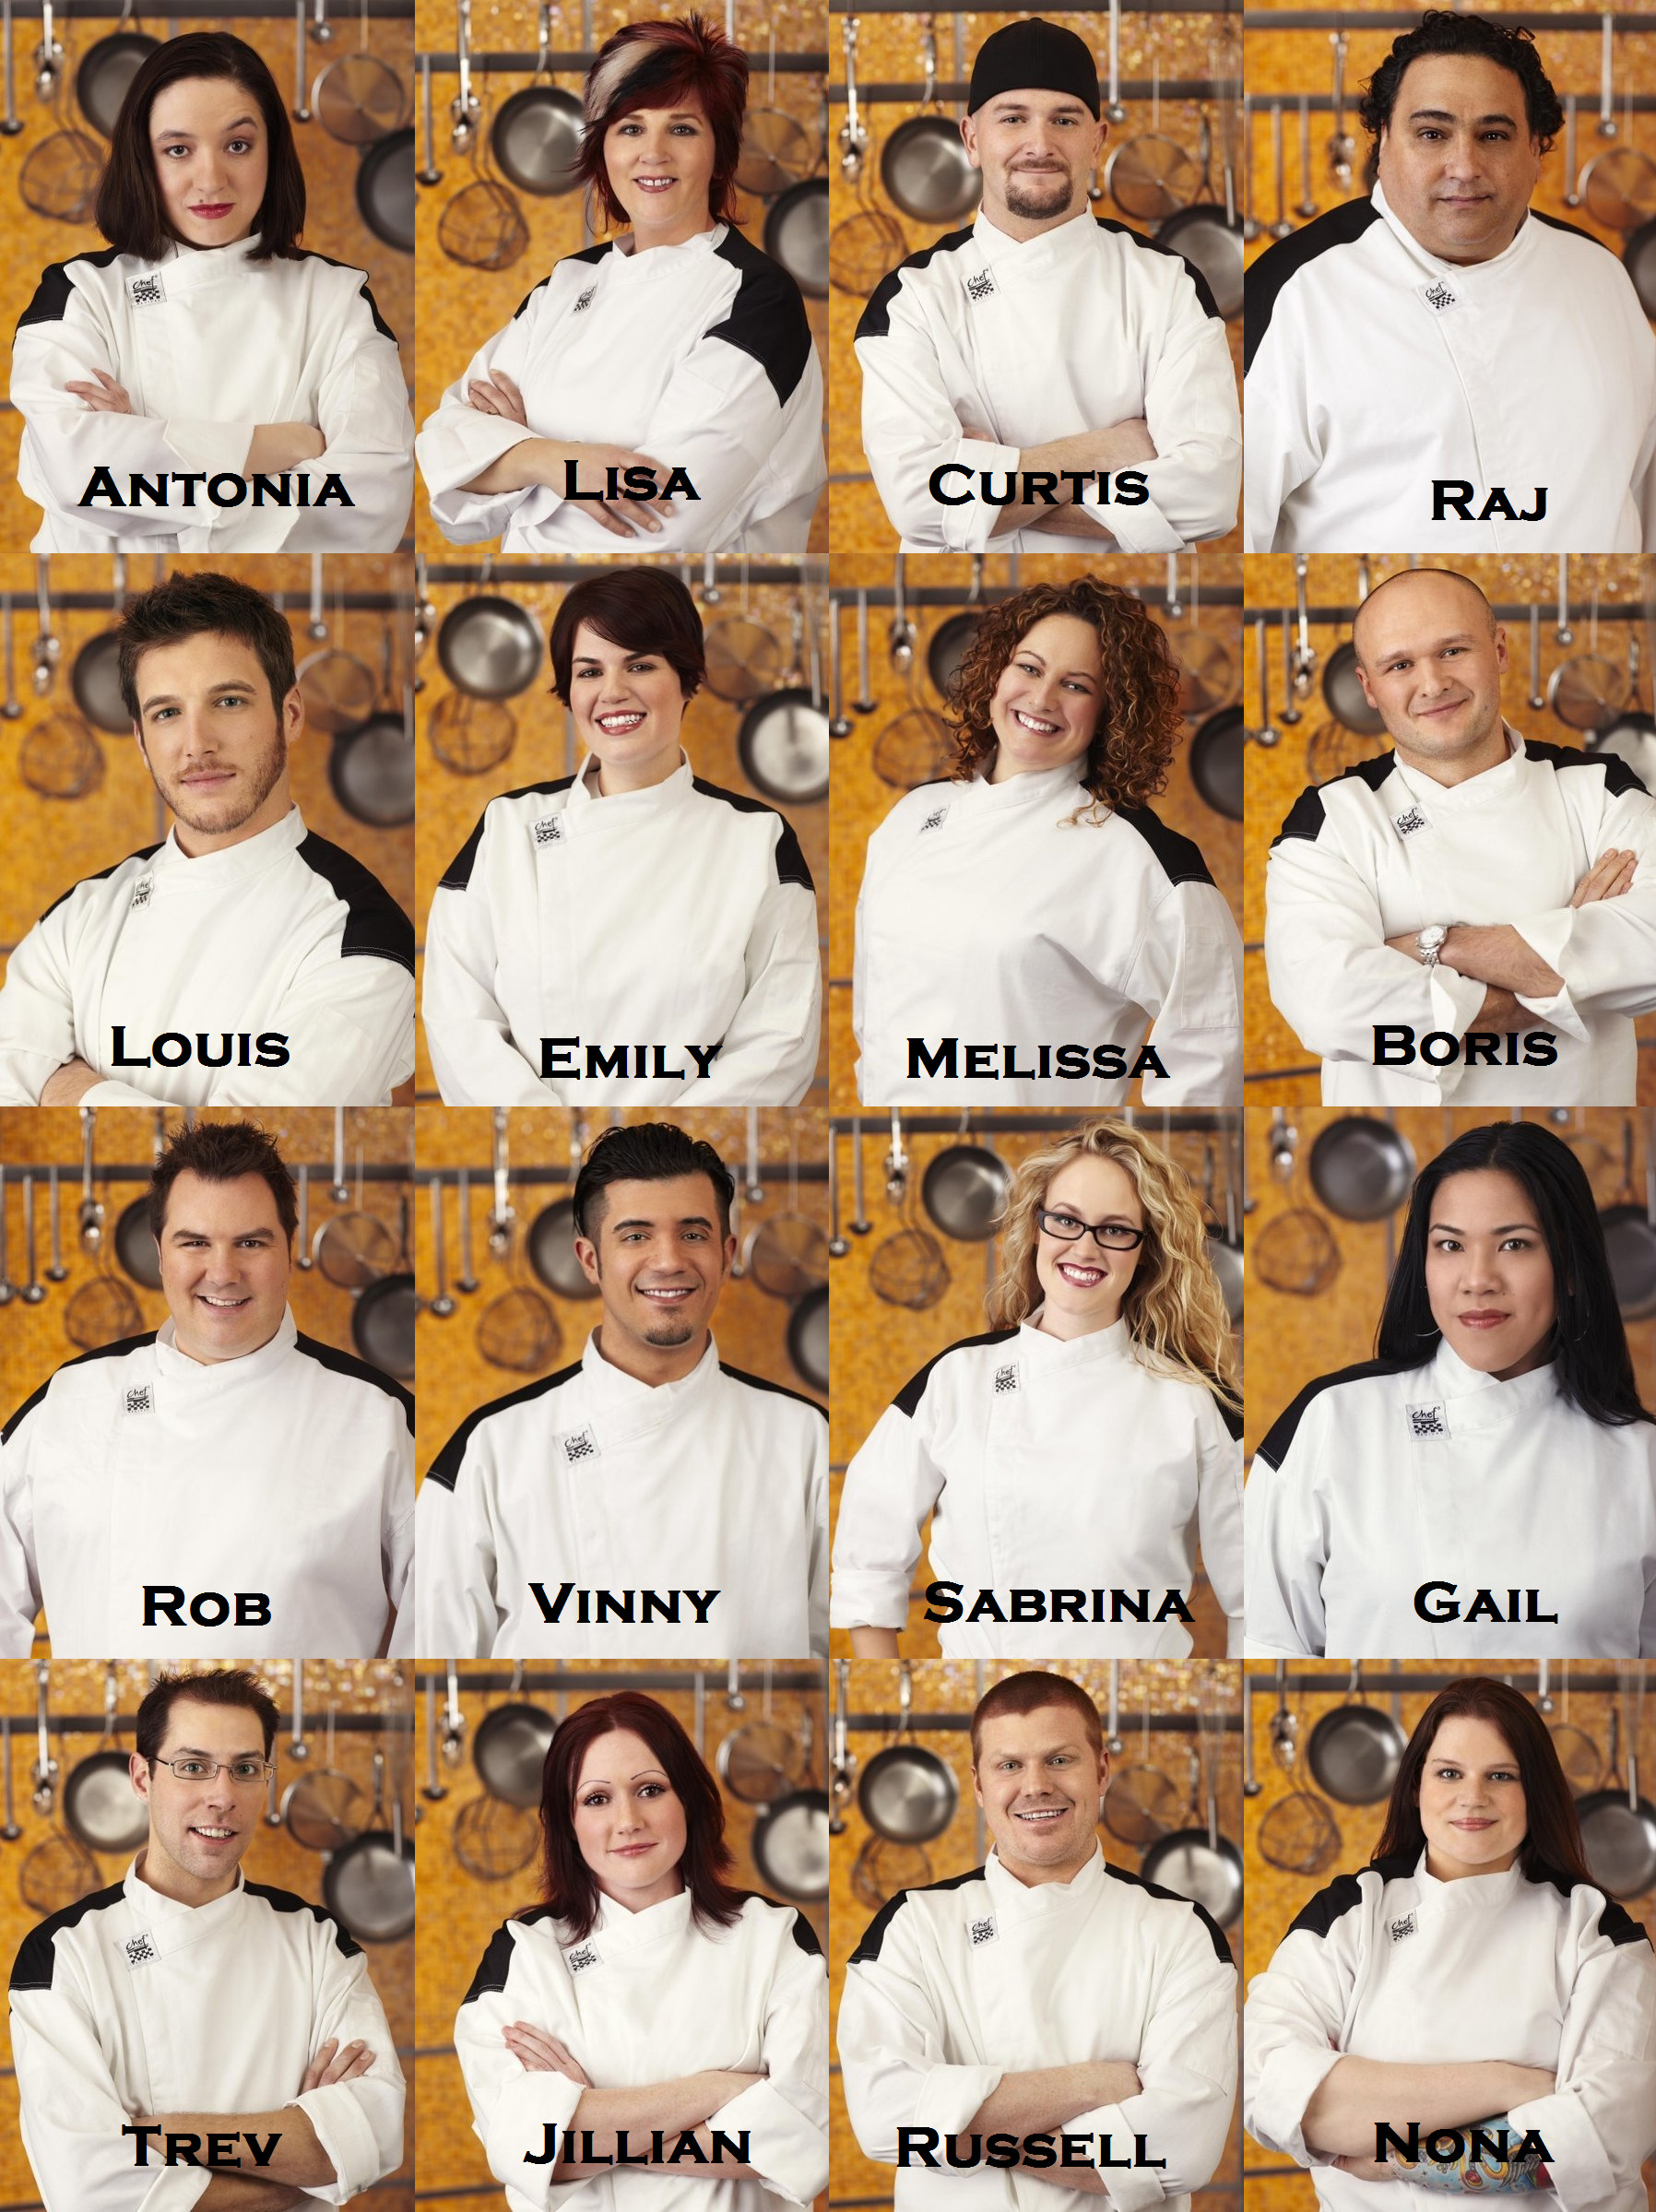 pokemonmanic3595 hells kitchen season 8 cast by pokemonmanic3595 - Hells Kitchen Season 3